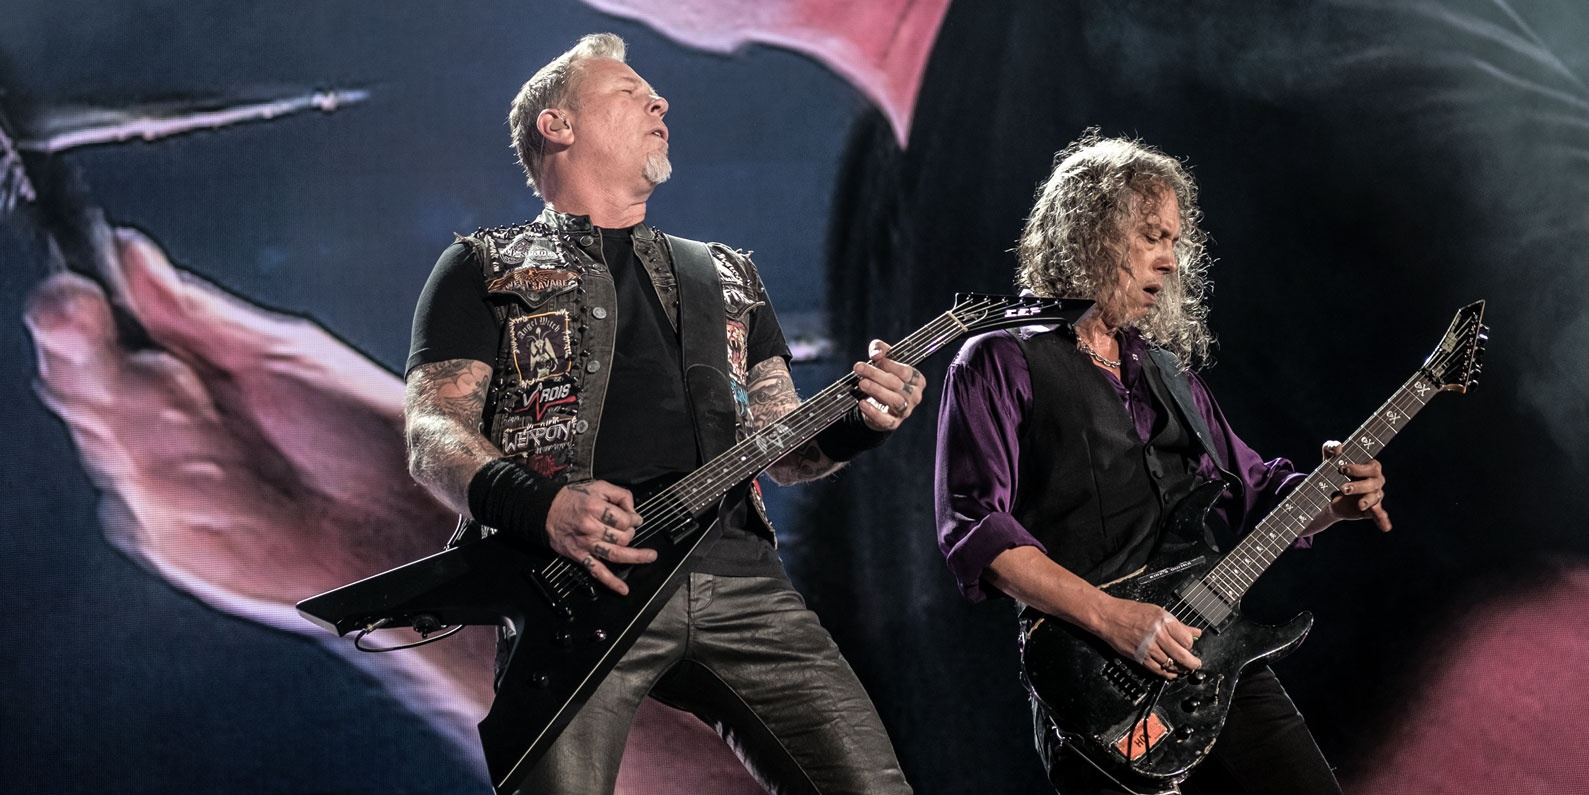 CONTEST: Win a pair of tickets to catch Metallica live in Singapore